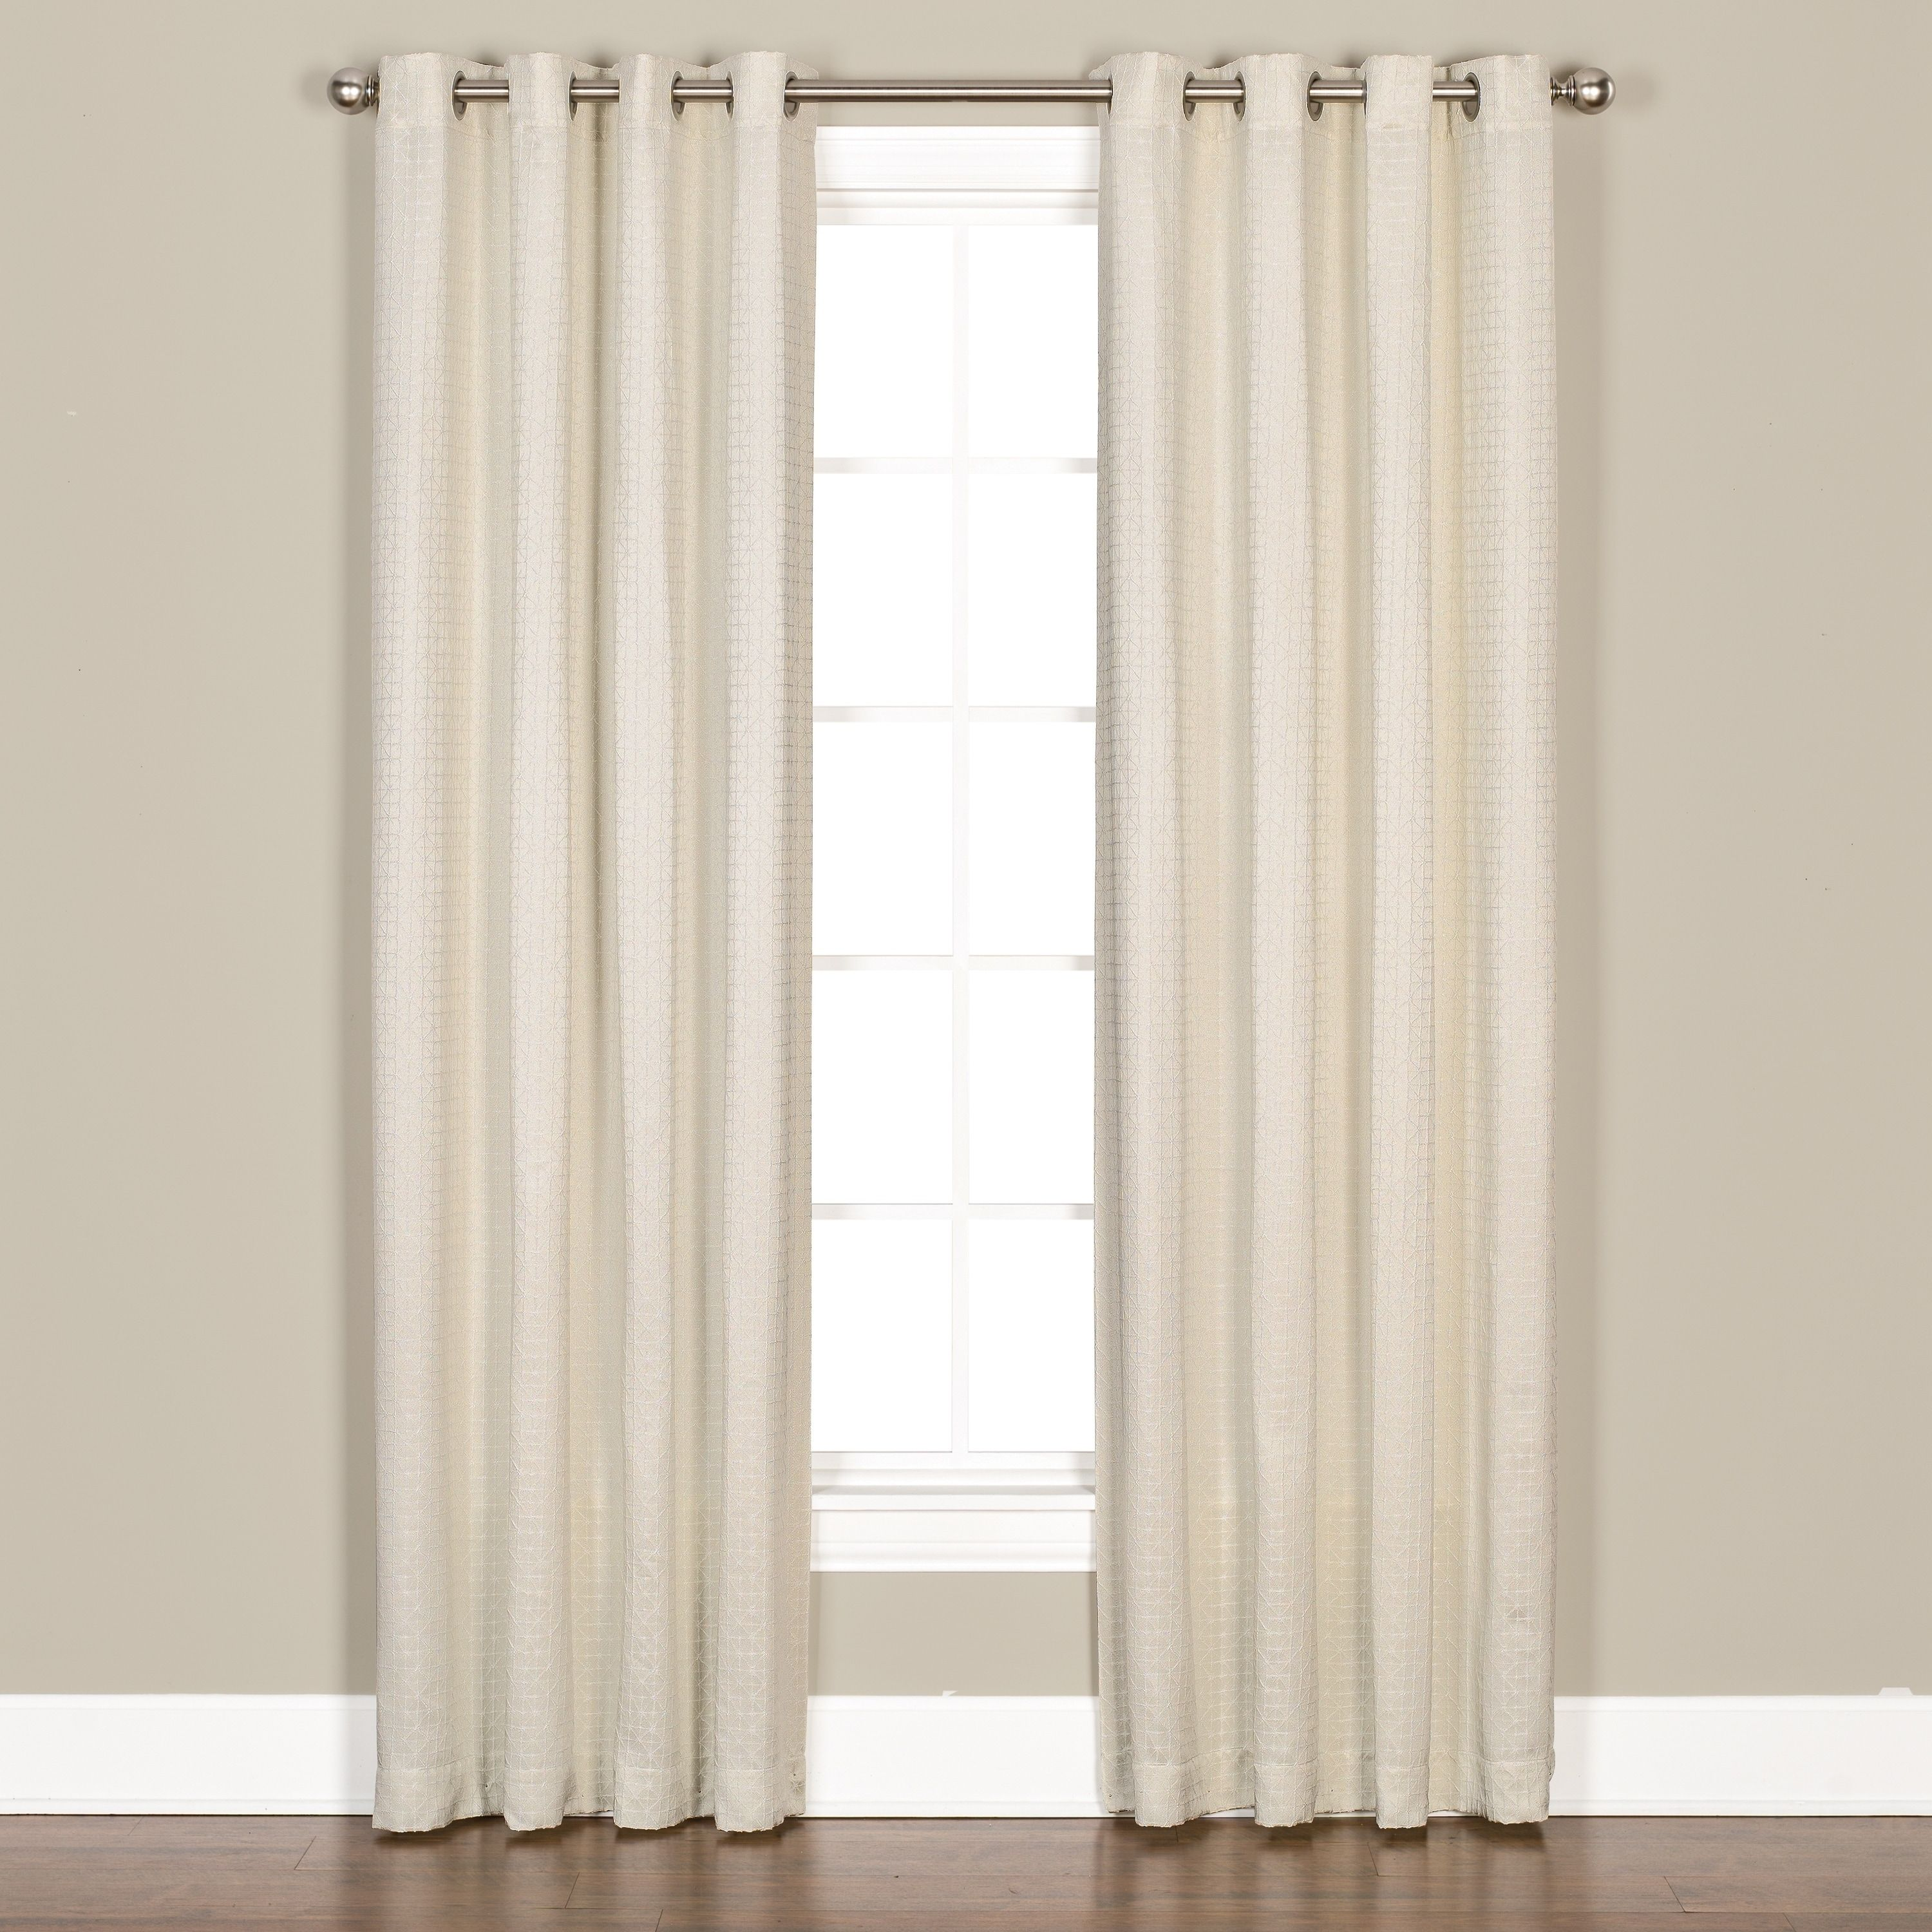 Skl Home Sarah 63 Inch Panel Pair Extra Wide White Polyester Solid Curtains Panel Curtains Window Curtains